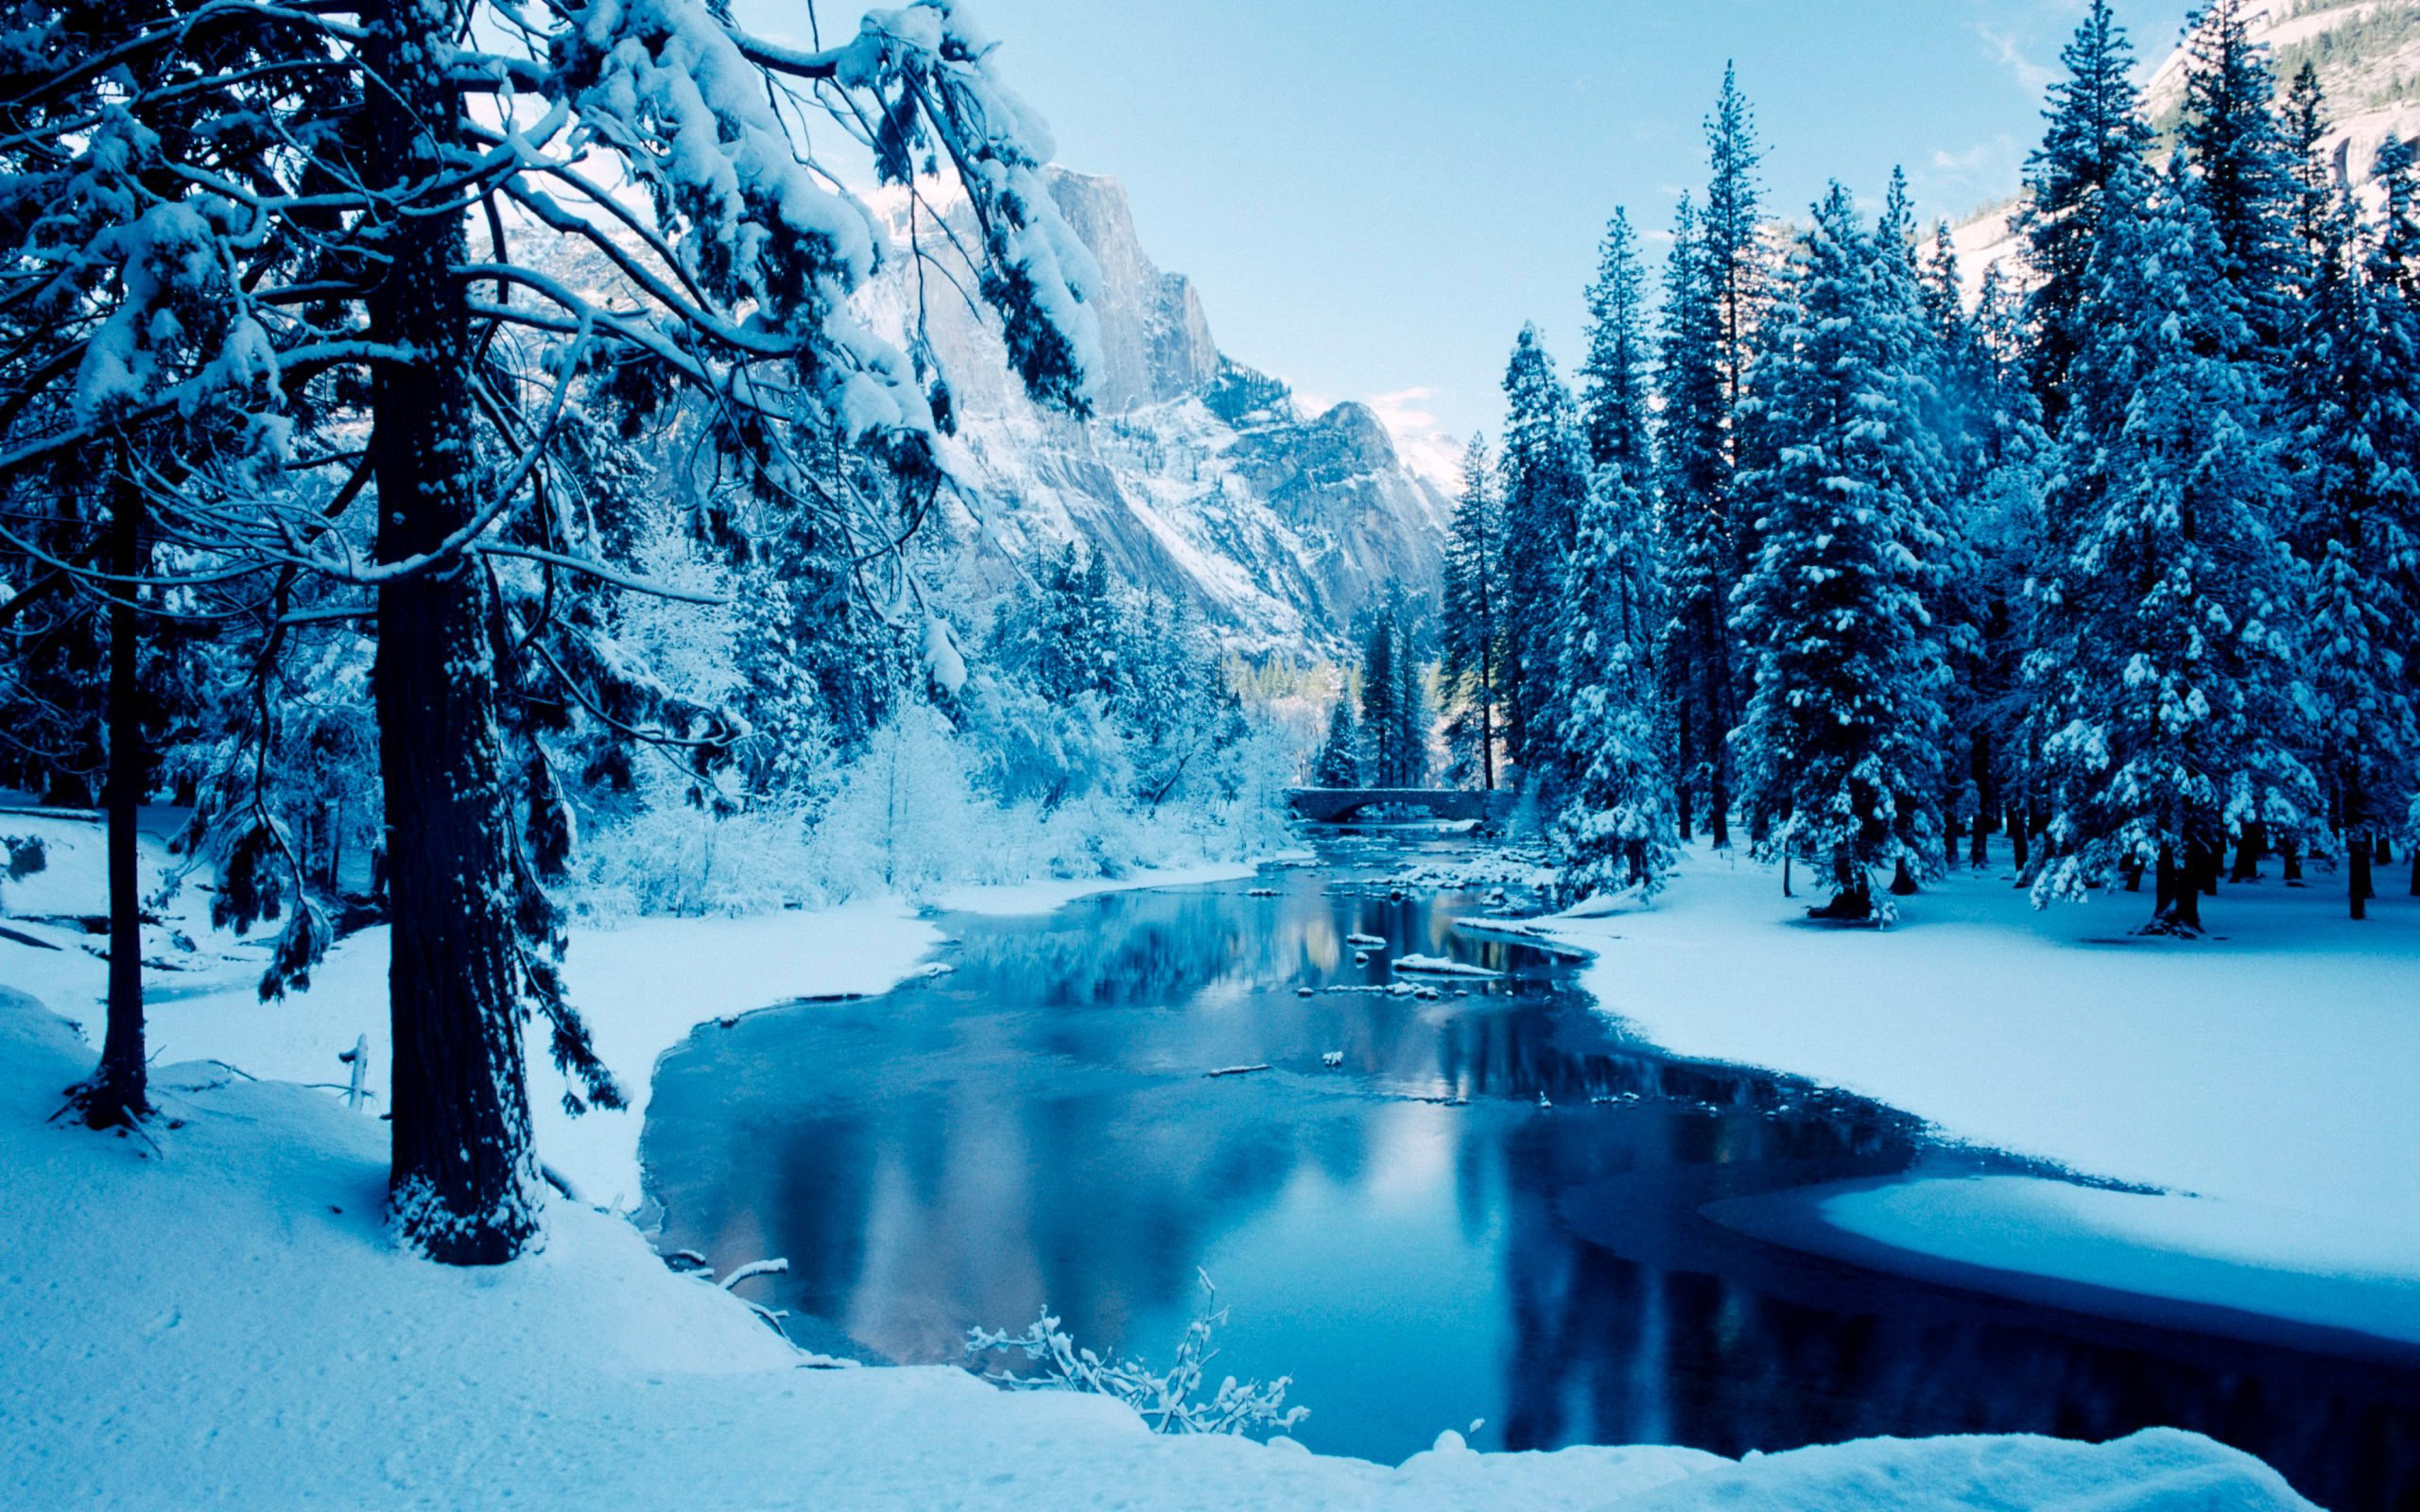 Nature Full Hd 3d Wallpapers 1920x1080 Winter Computer Wallpapers And Screensavers 53 Images